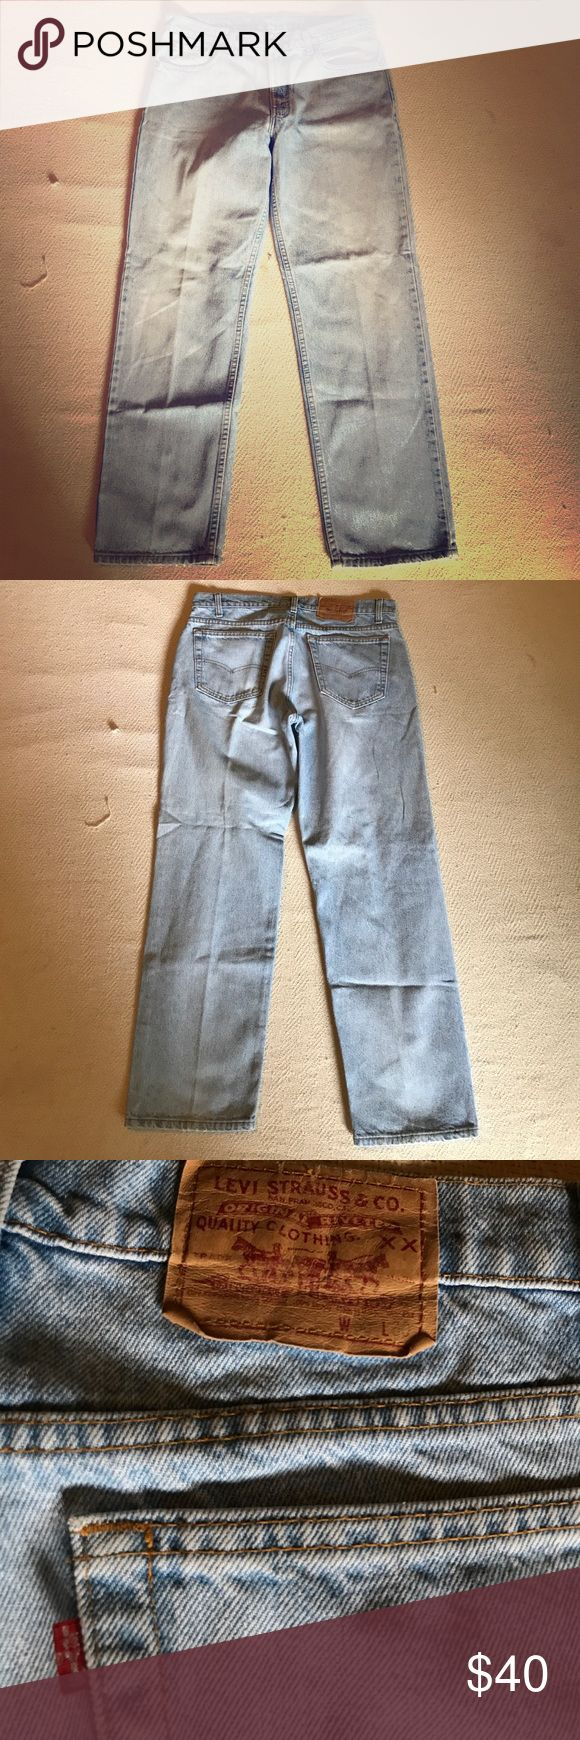 Levi's 506 vintage 36 x 30 jeans light wash USA USA made vintage Levi's jeans size 36 x 30 506 series we ship fast check these out! Levi's Jeans Straight